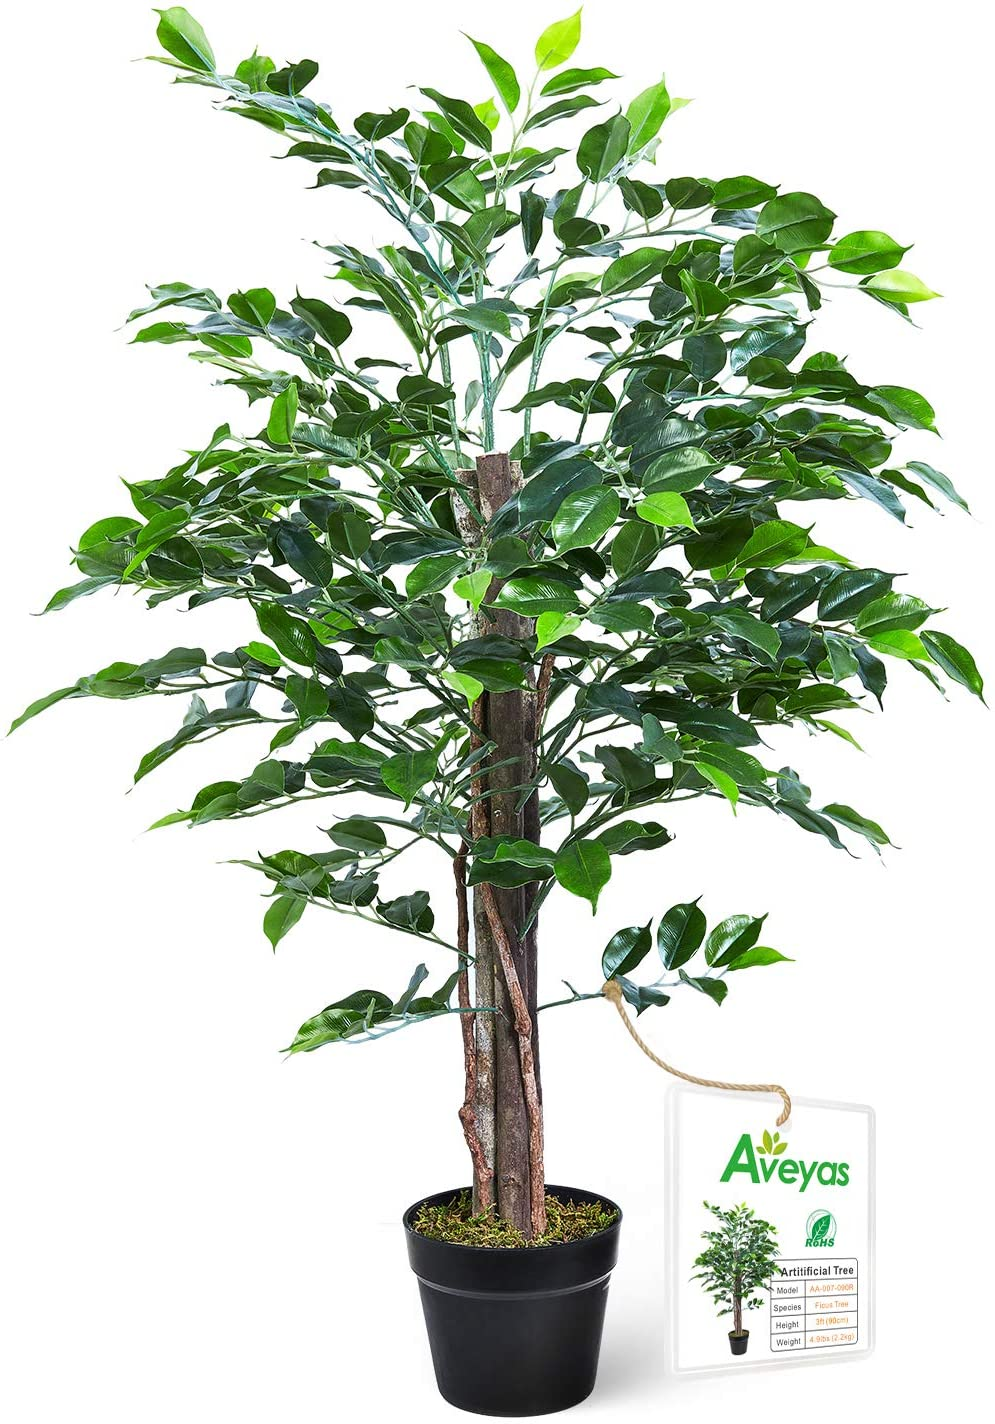 Aveyas 3ft Artificial Ficus Silk Tree in Plastic Nursery Pot, Fake Plant for Office House Farmhouse Living Room Home Decor (Indoor/Outdoor)